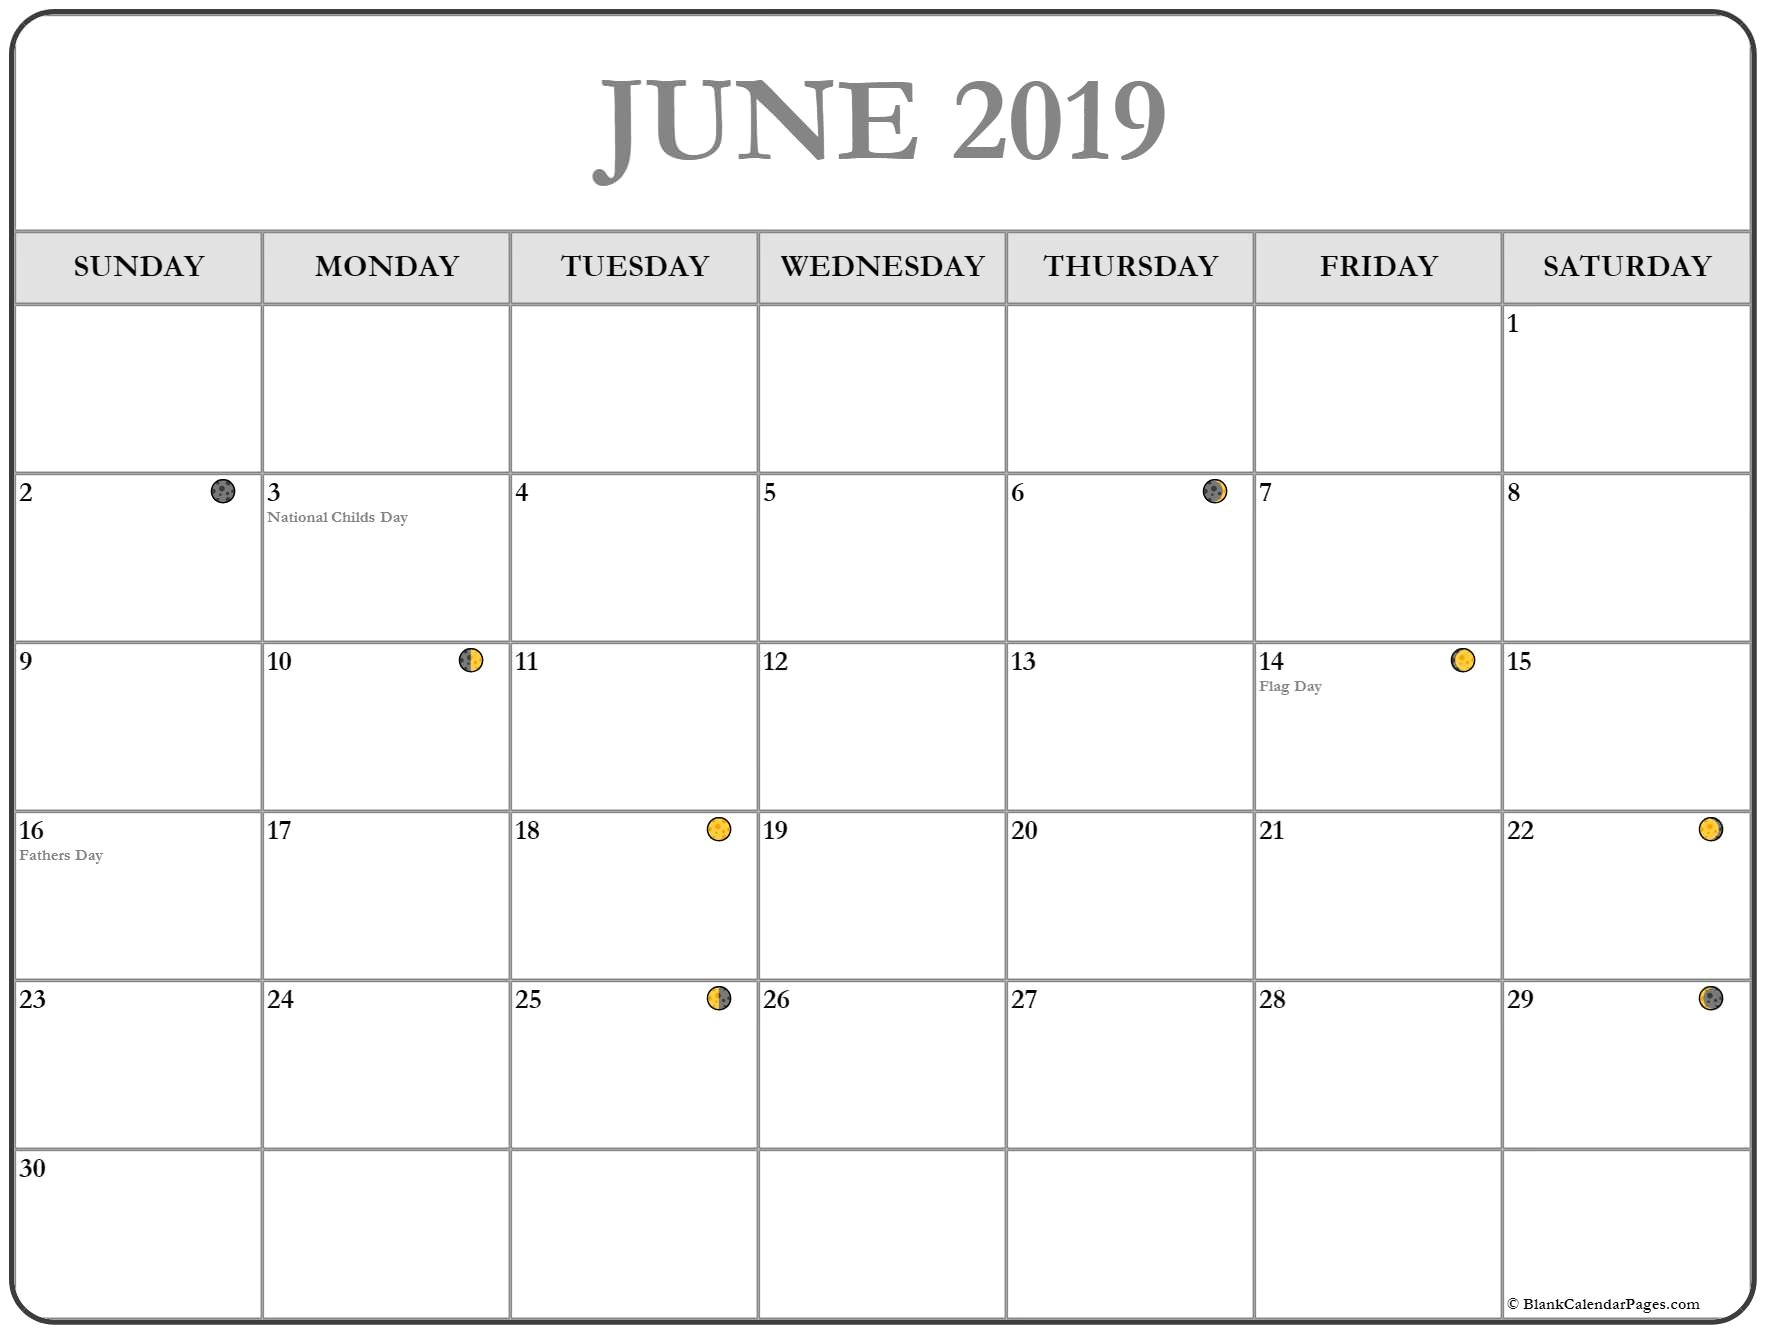 Moon Phases June 2019 Calendar Printable - Free Printable Calendar Calendar 2019 With Moon Phases